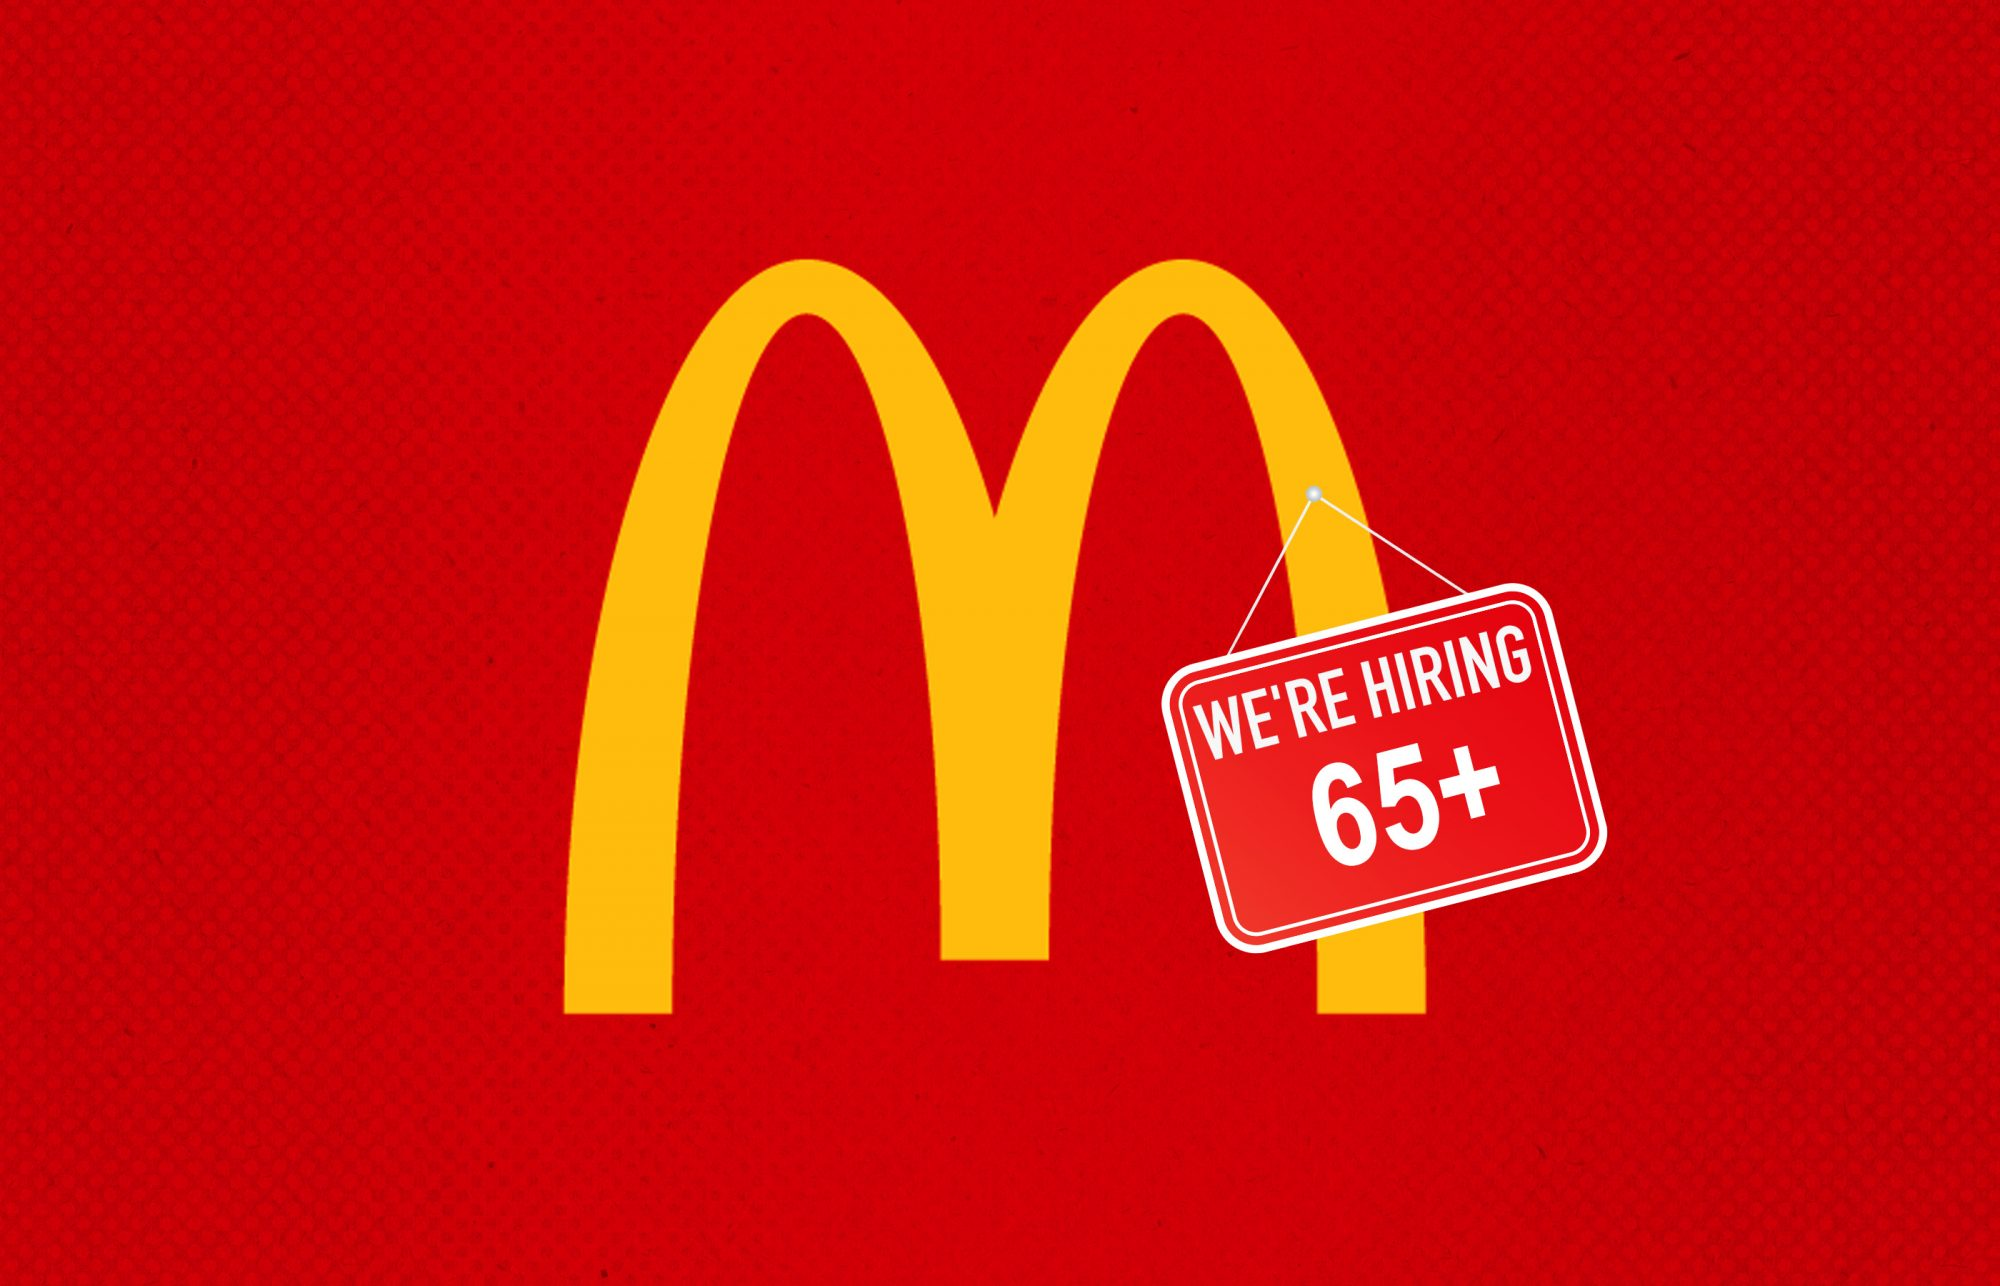 McDonald's Has 250,000 Jobs to Fill — and It Wants to Hire Older Americans